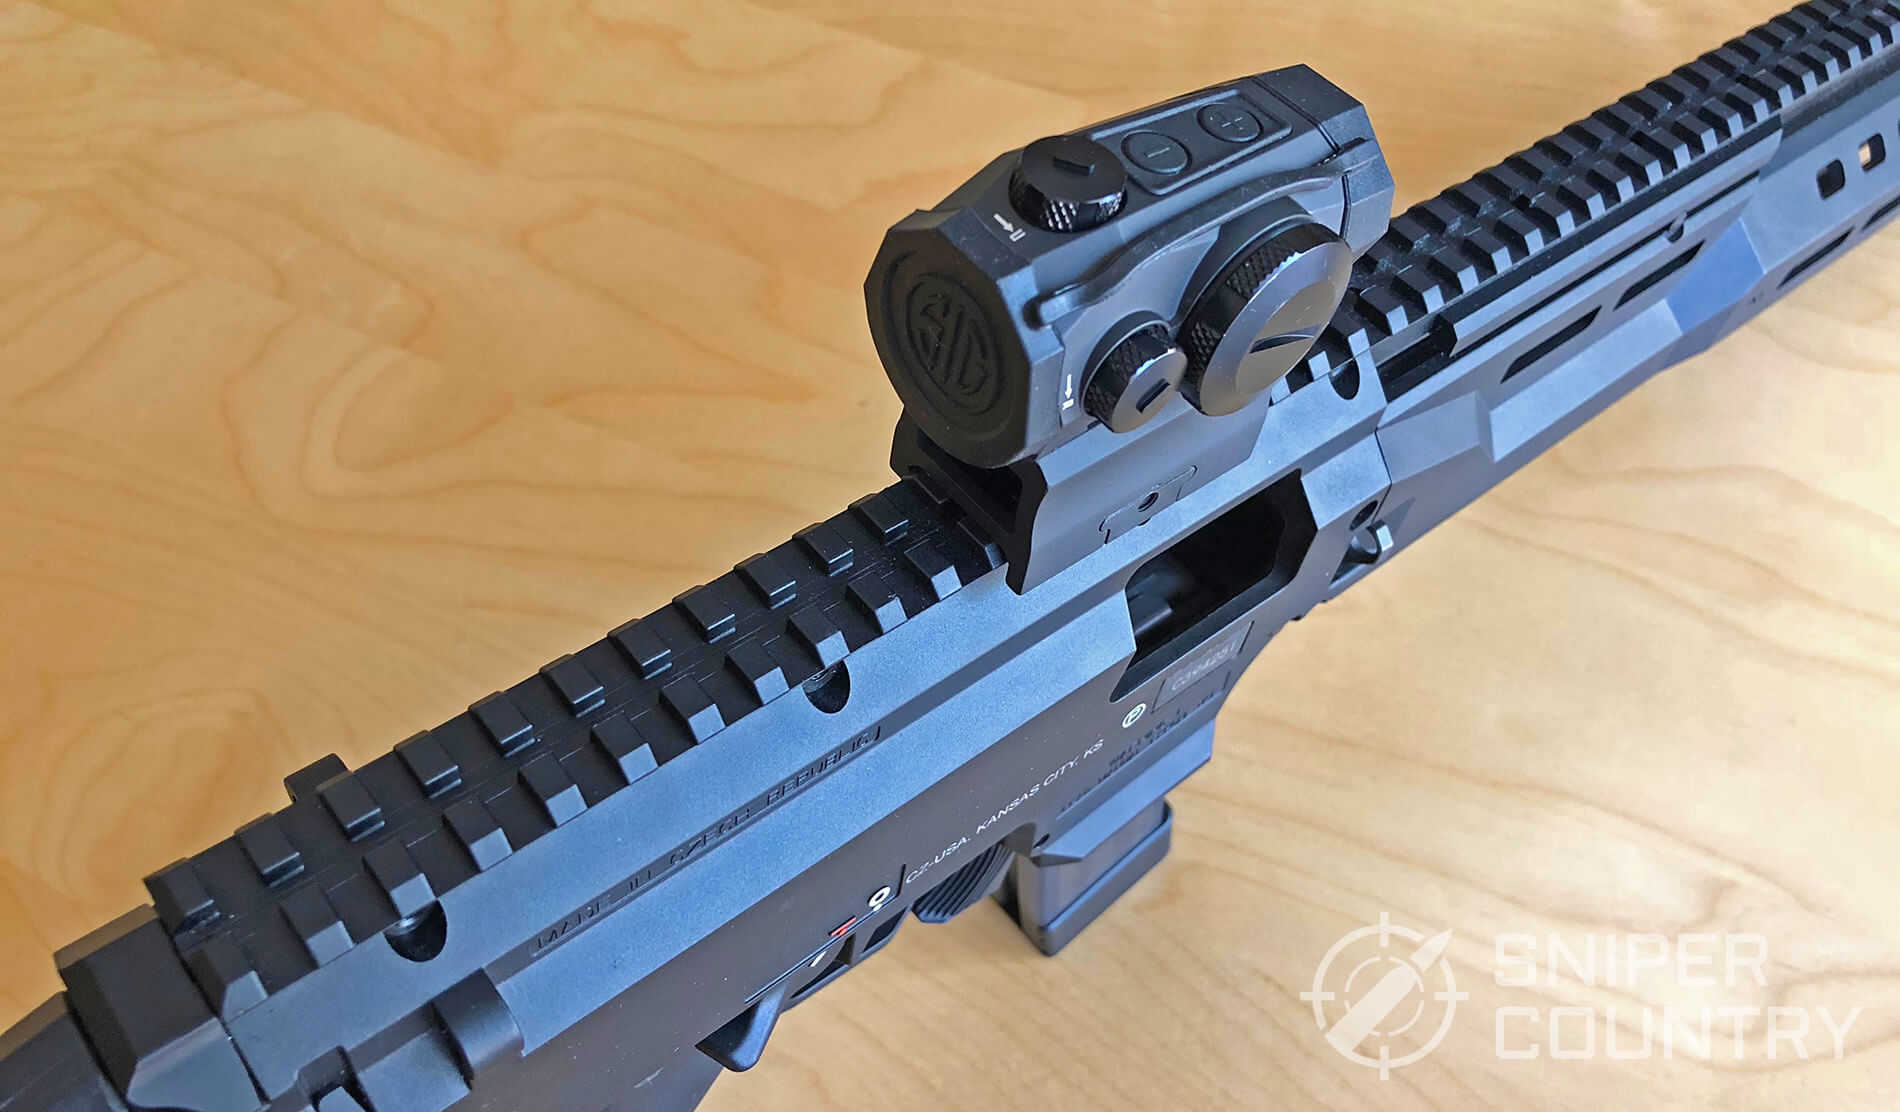 Sig Sauer Romeo 5 mounted on 9mm carbine